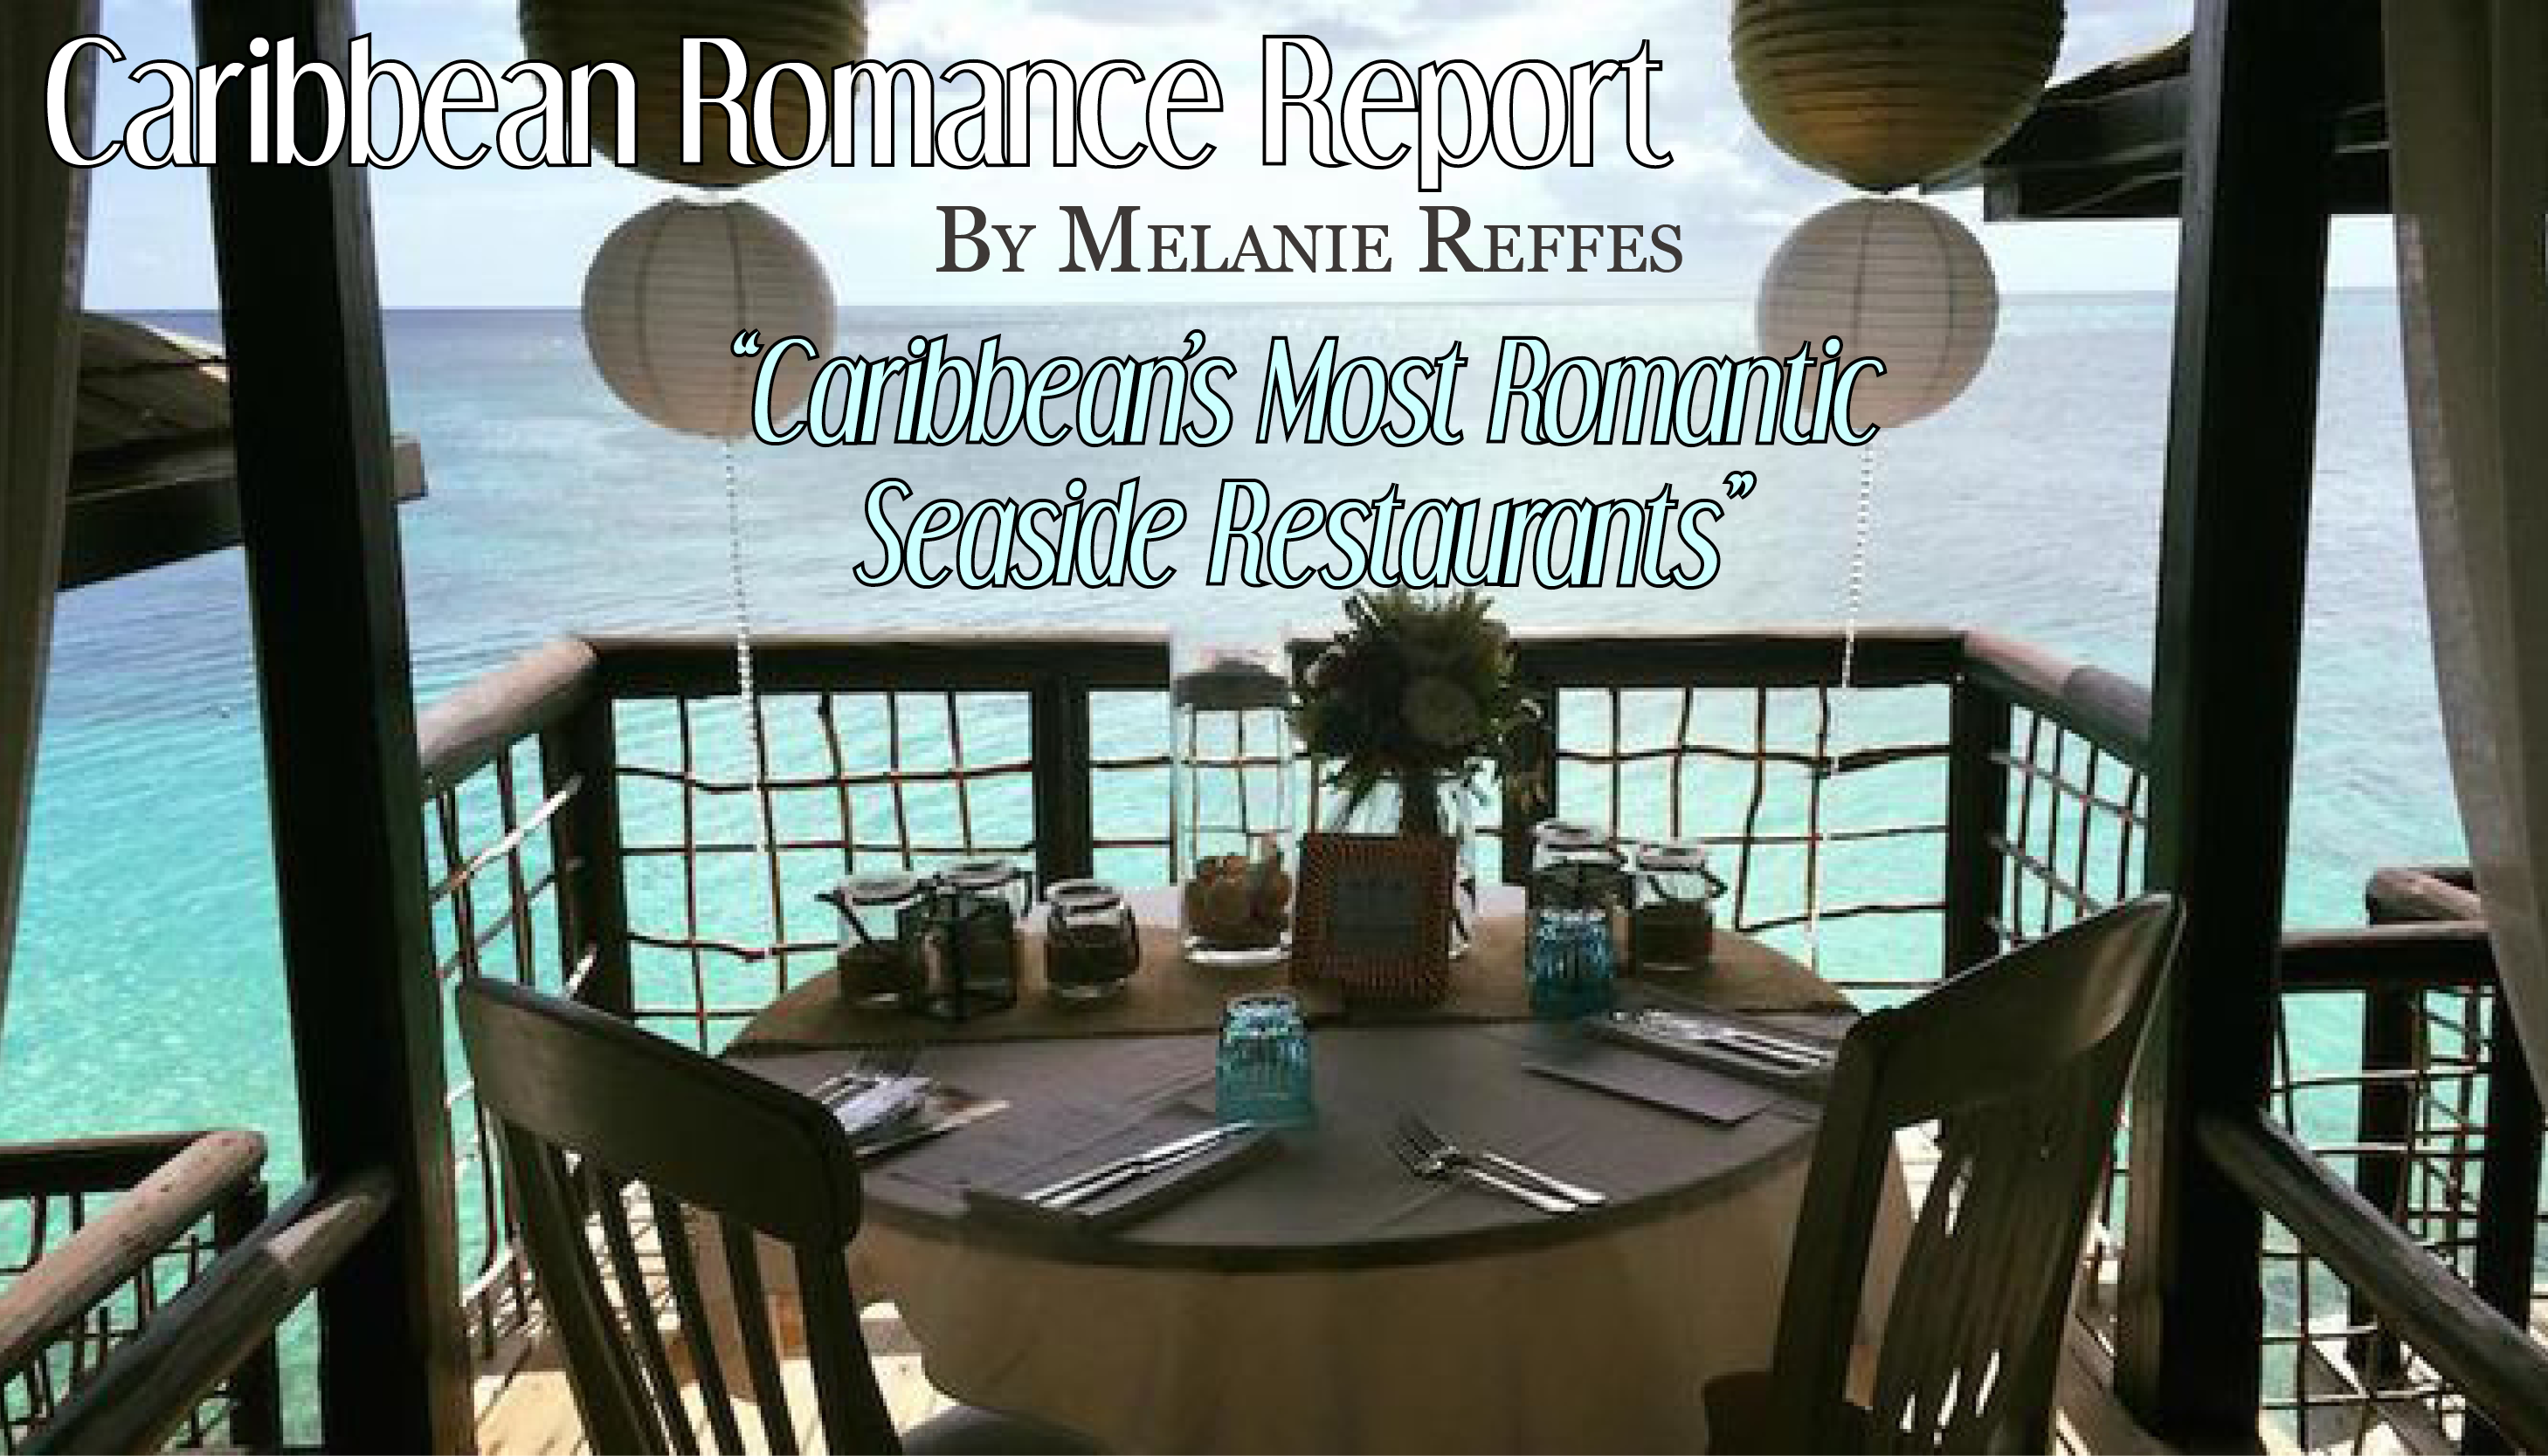 The Caribbean's Most Romantic Seaside Restaurants